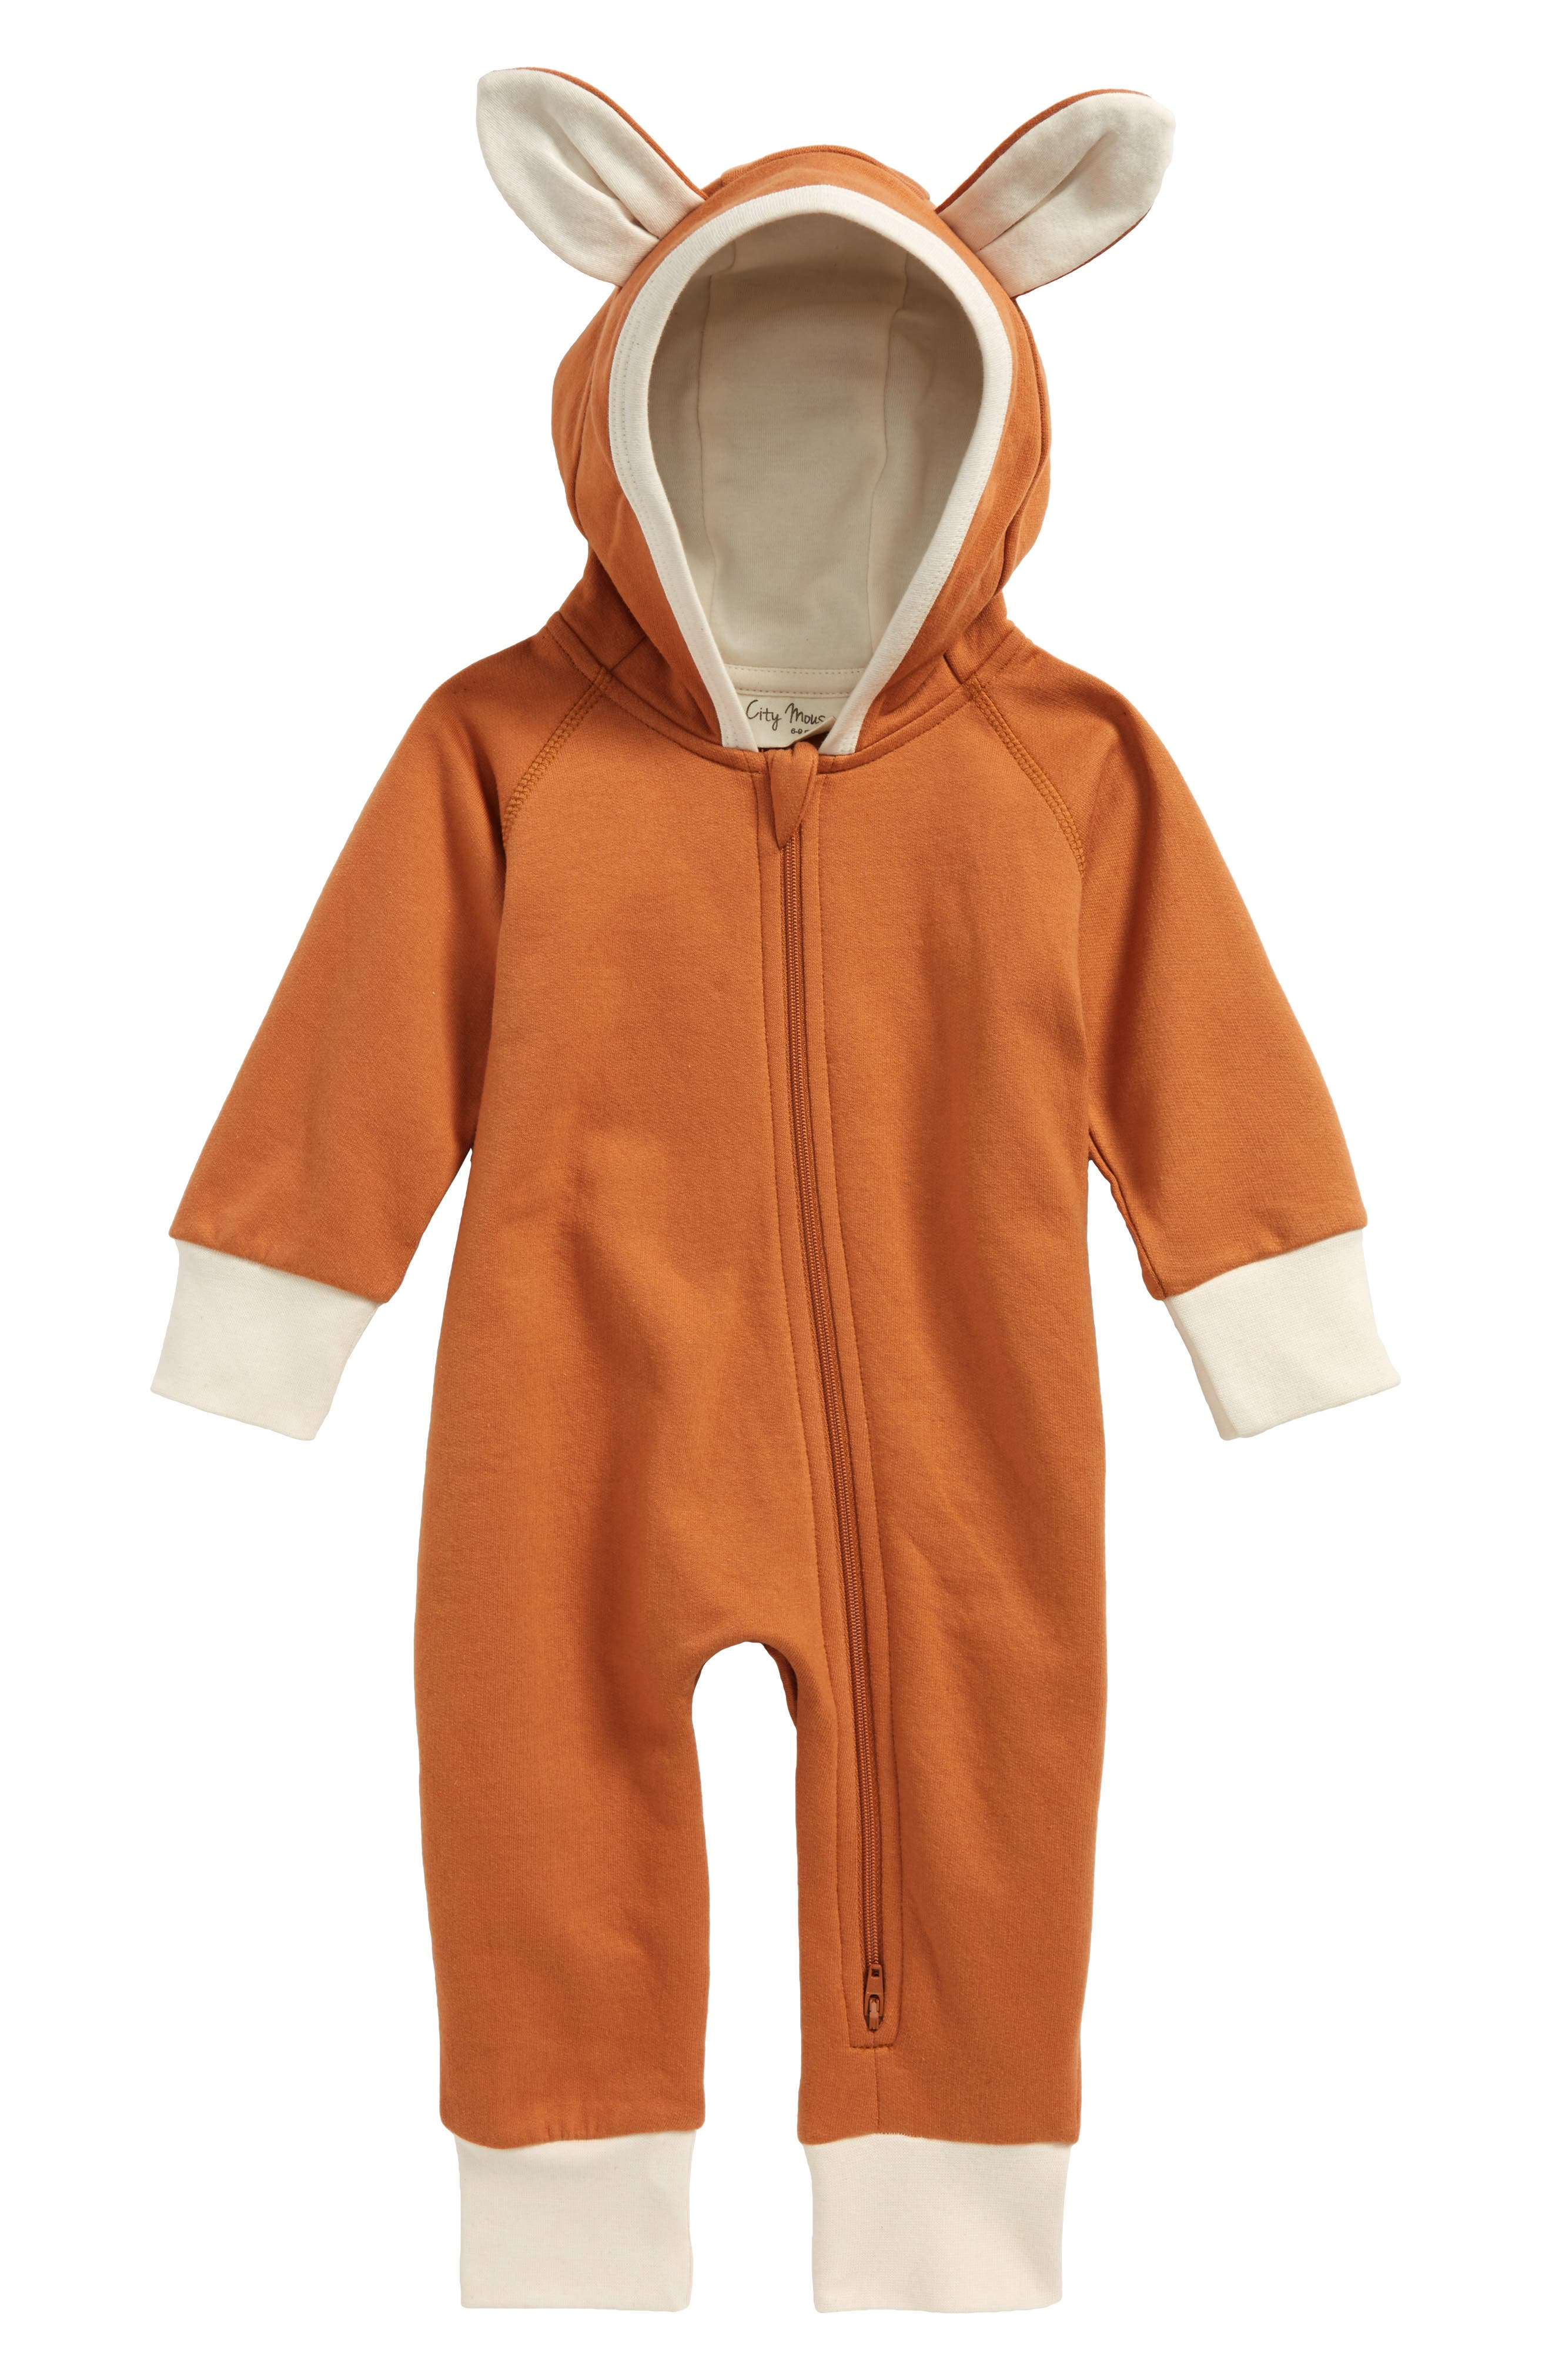 Main Image - City Mouse Fox Hooded Organic Cotton Romper (Baby Boys)